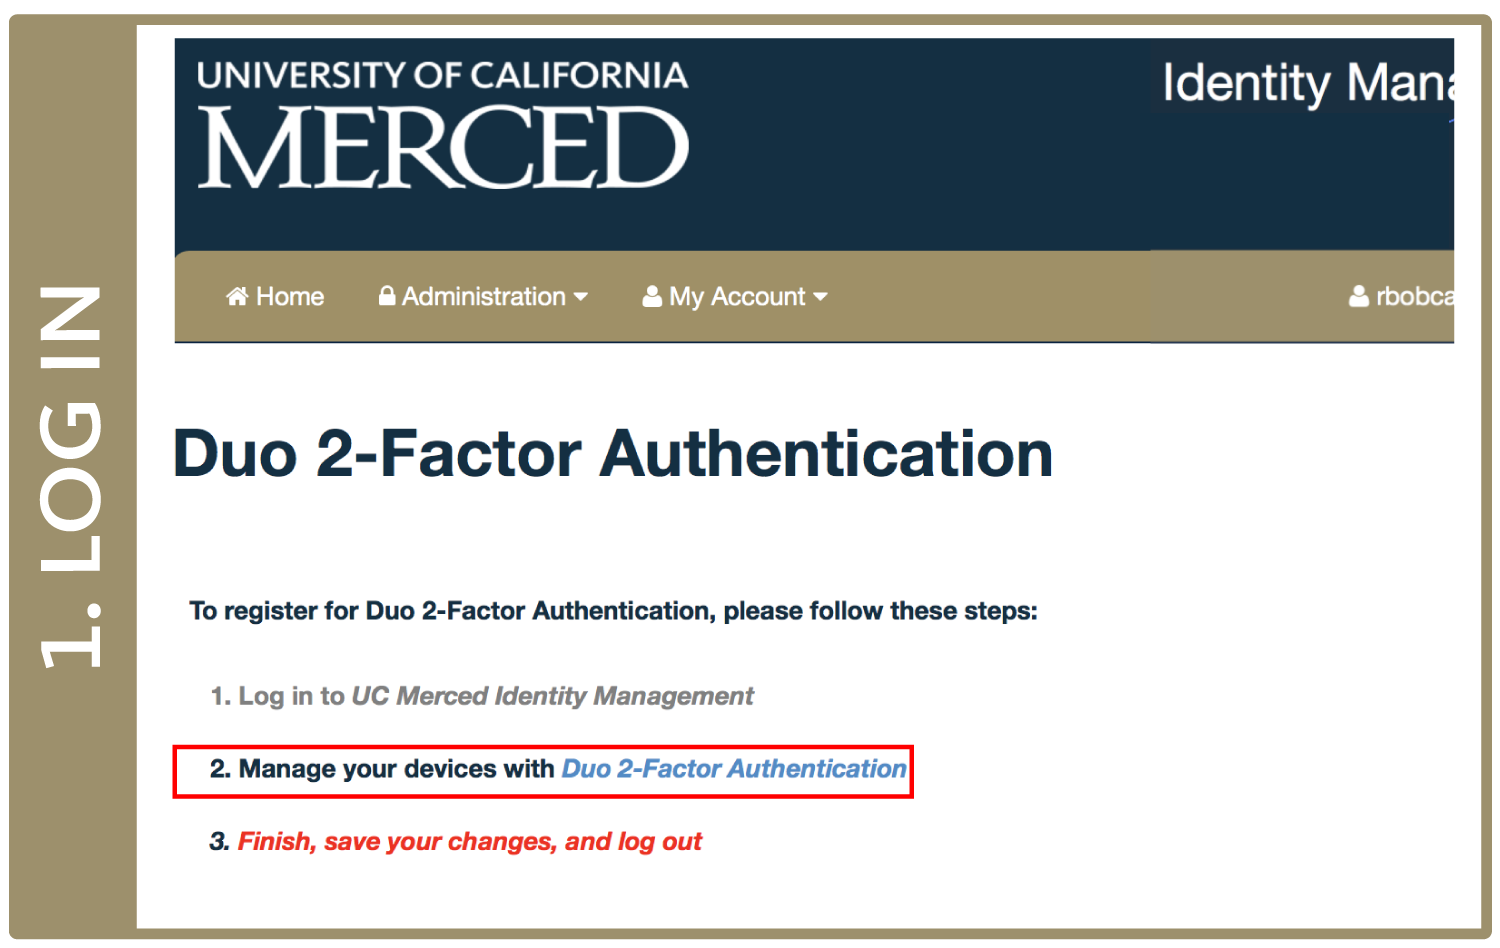 Click Manage your devices with Duo 2-Factor Authentication.